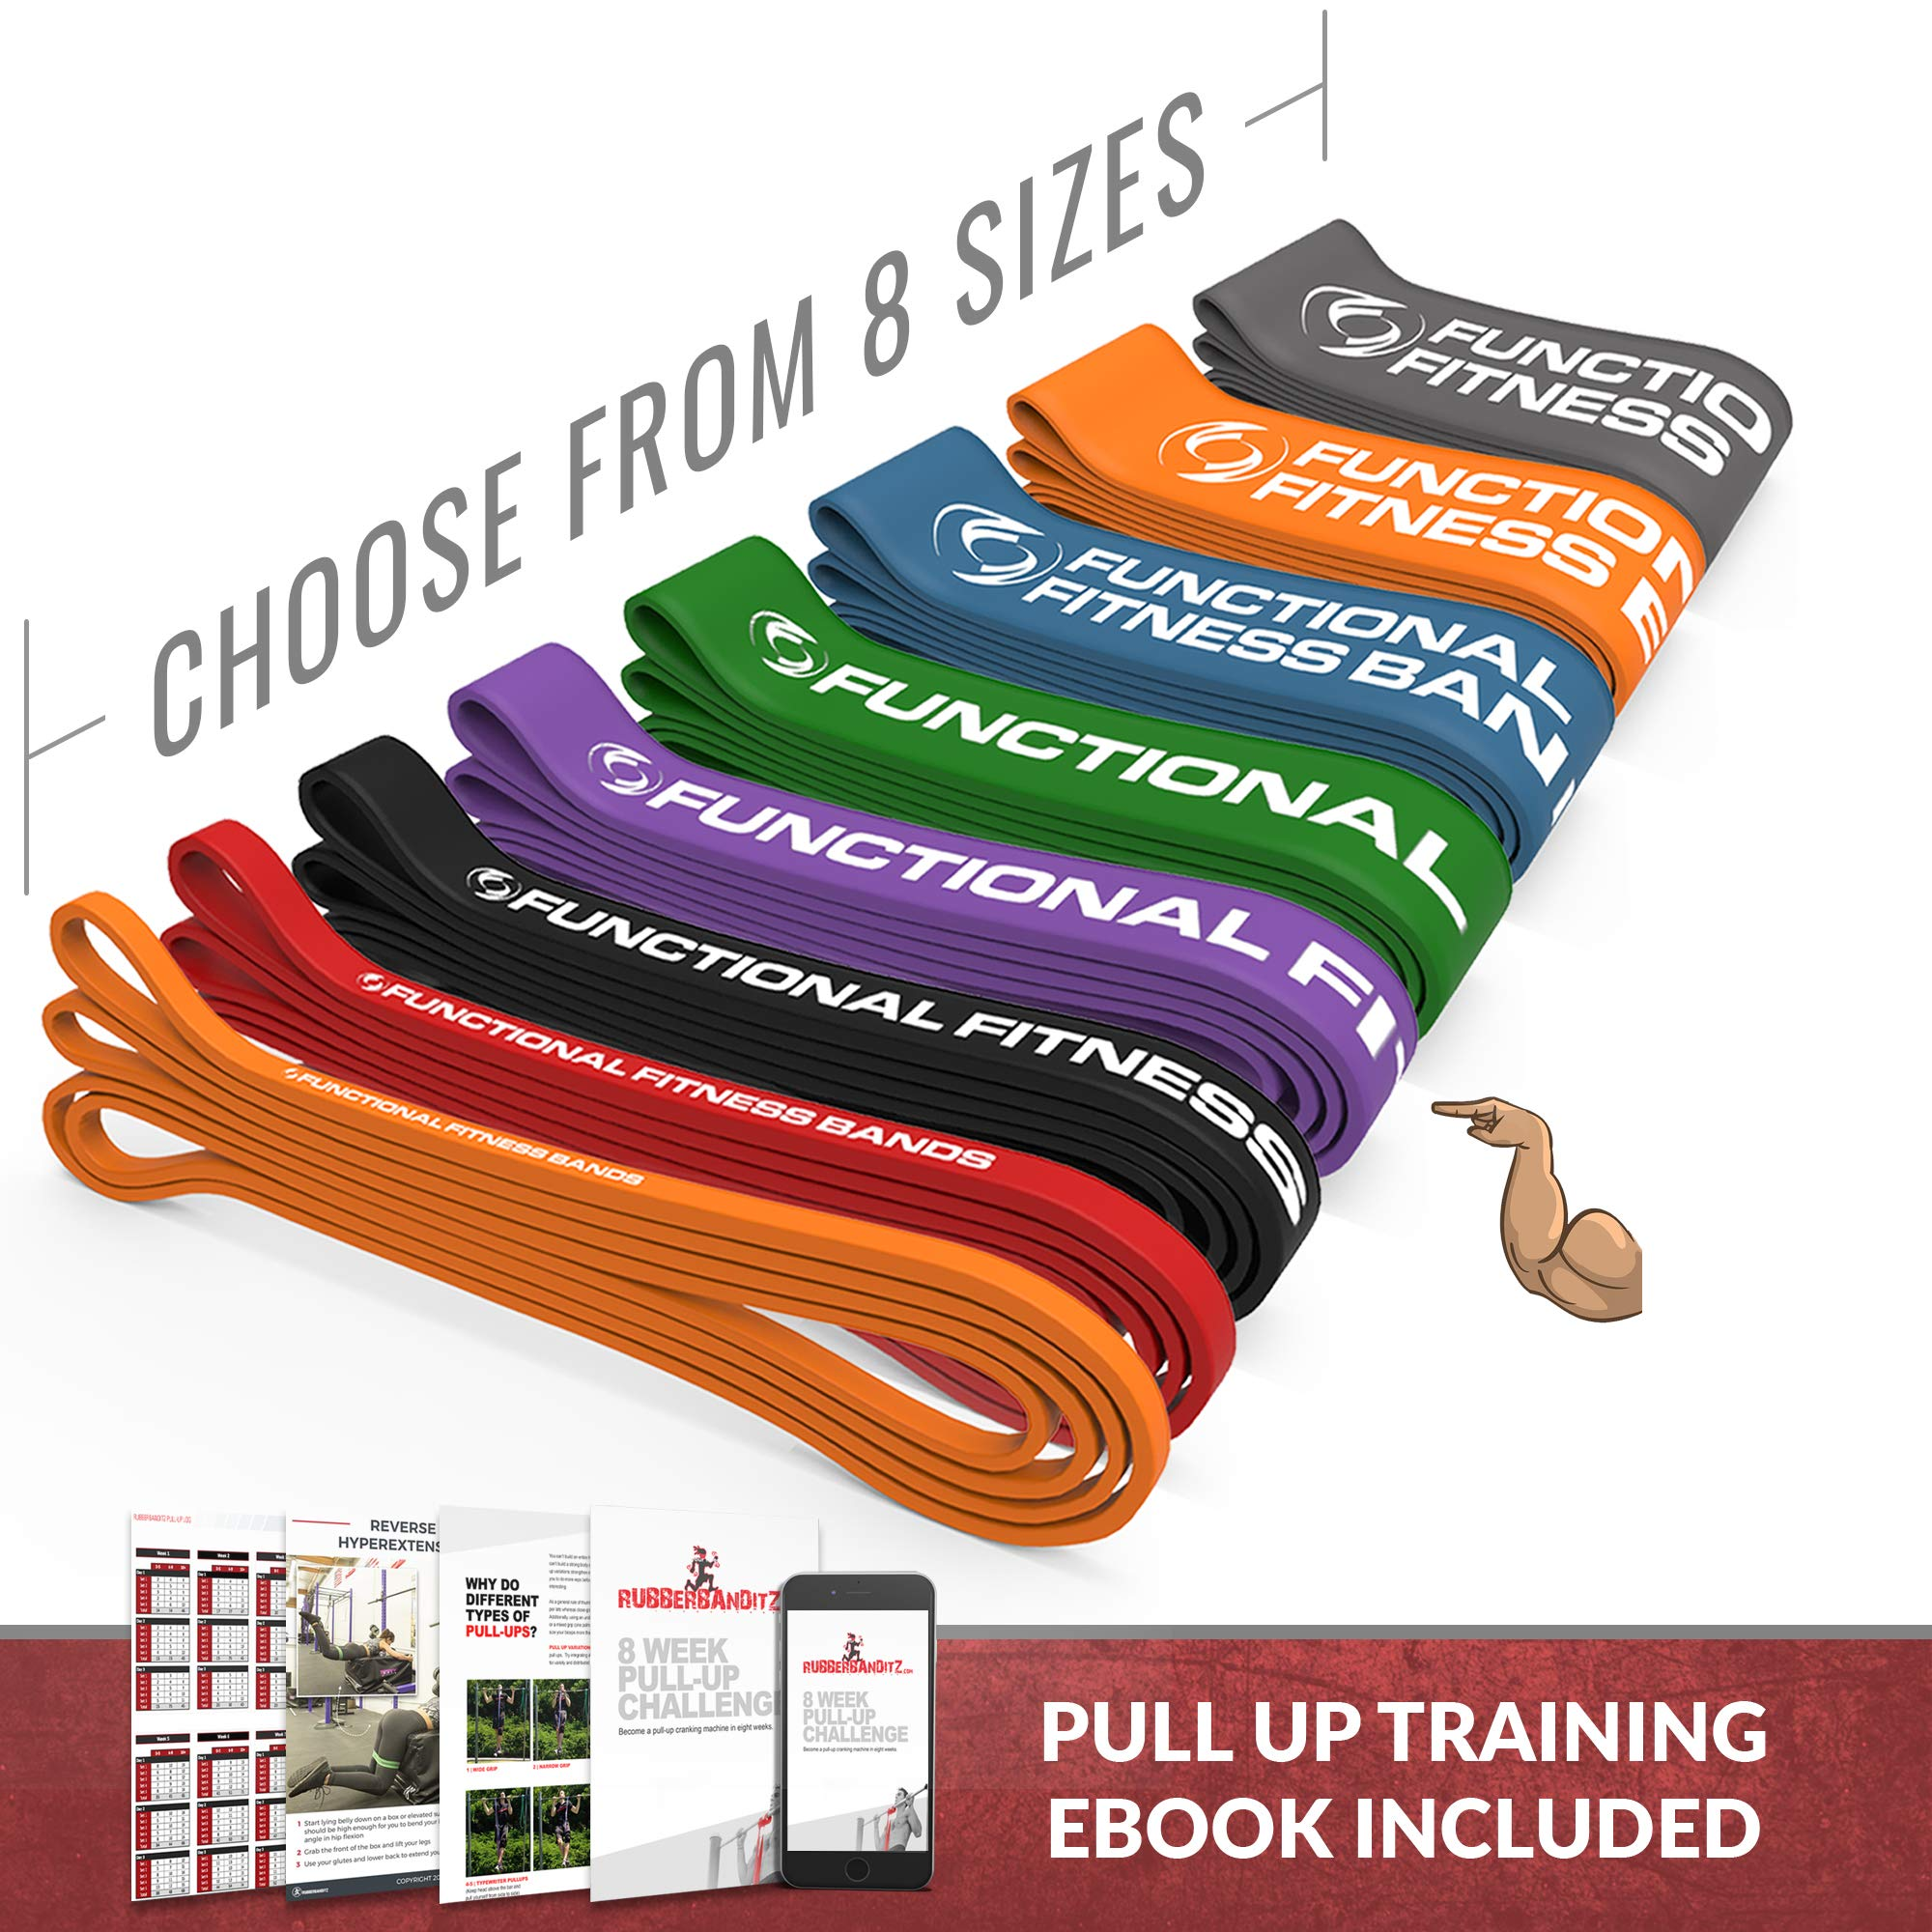 Rubberbanditz Functional Fitness Pull Up Assistance Resistance Band #4 - for 40-80 lbs of Resistance for Mobility, Stretching, Pilates, Exercise, Chin Ups, Powerlifting, Fitness & Crossfit